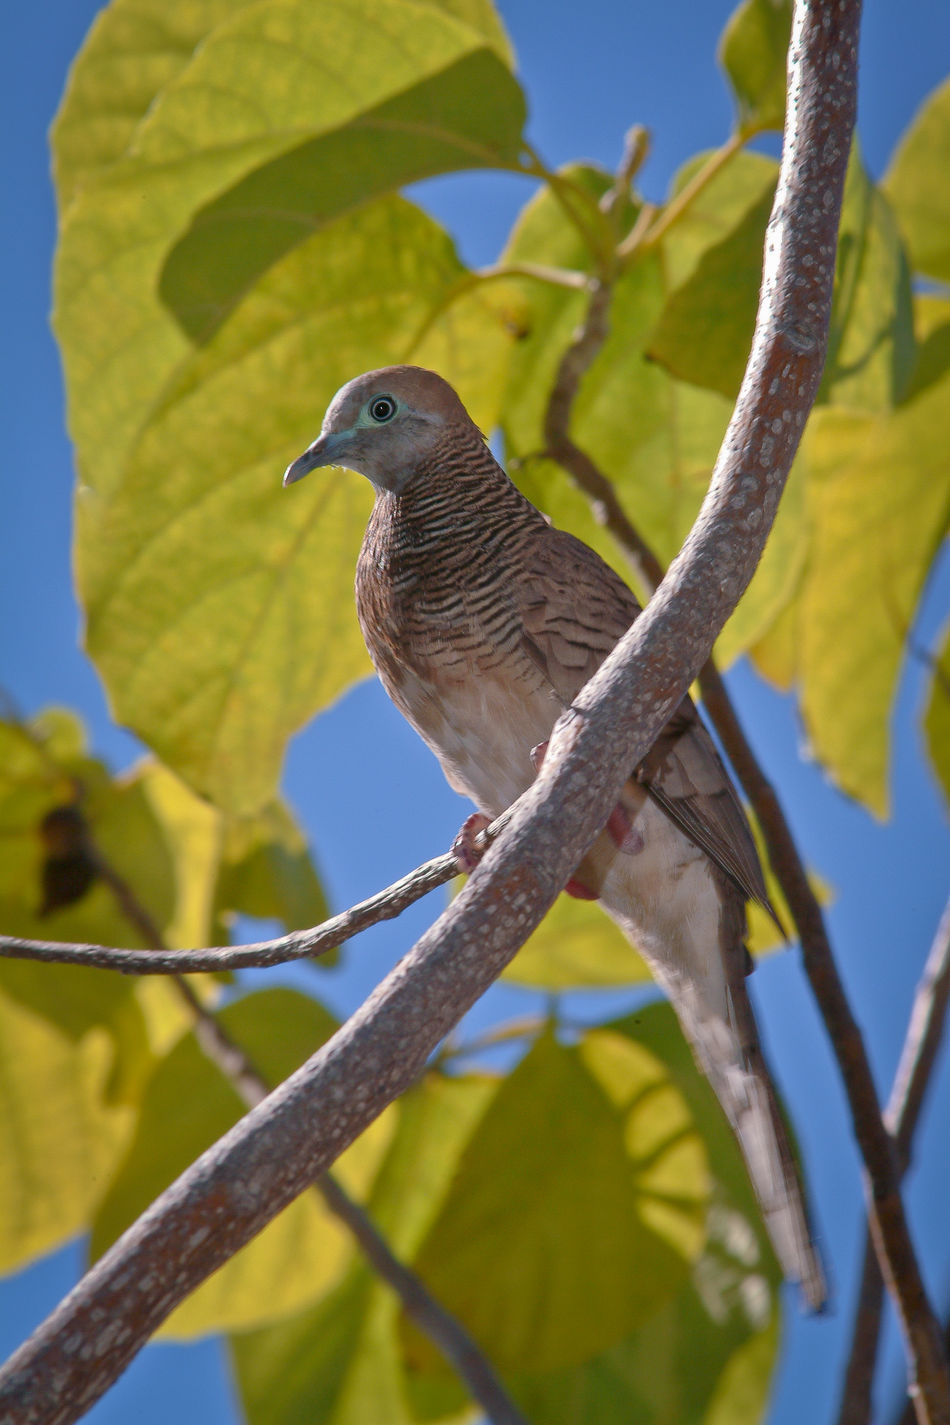 A Zebra Dove perches on a tree branch on Maui (Hawaii, US). Zebra Doves are not native to Hawaii, having reportedly been introduced there in 1922 from Malaysia or possibly elsewhere. Animal Themes Avian Beauty In Nature Bird Blue Branch Geopelia Striata Green Color Hawaii Low Angle View Maui Maui Hawaii Mauiphotography Merbok No People Outdoors Perching Perkutut Selective Focus Tree Tukmo, Wildlife Zebra Dove